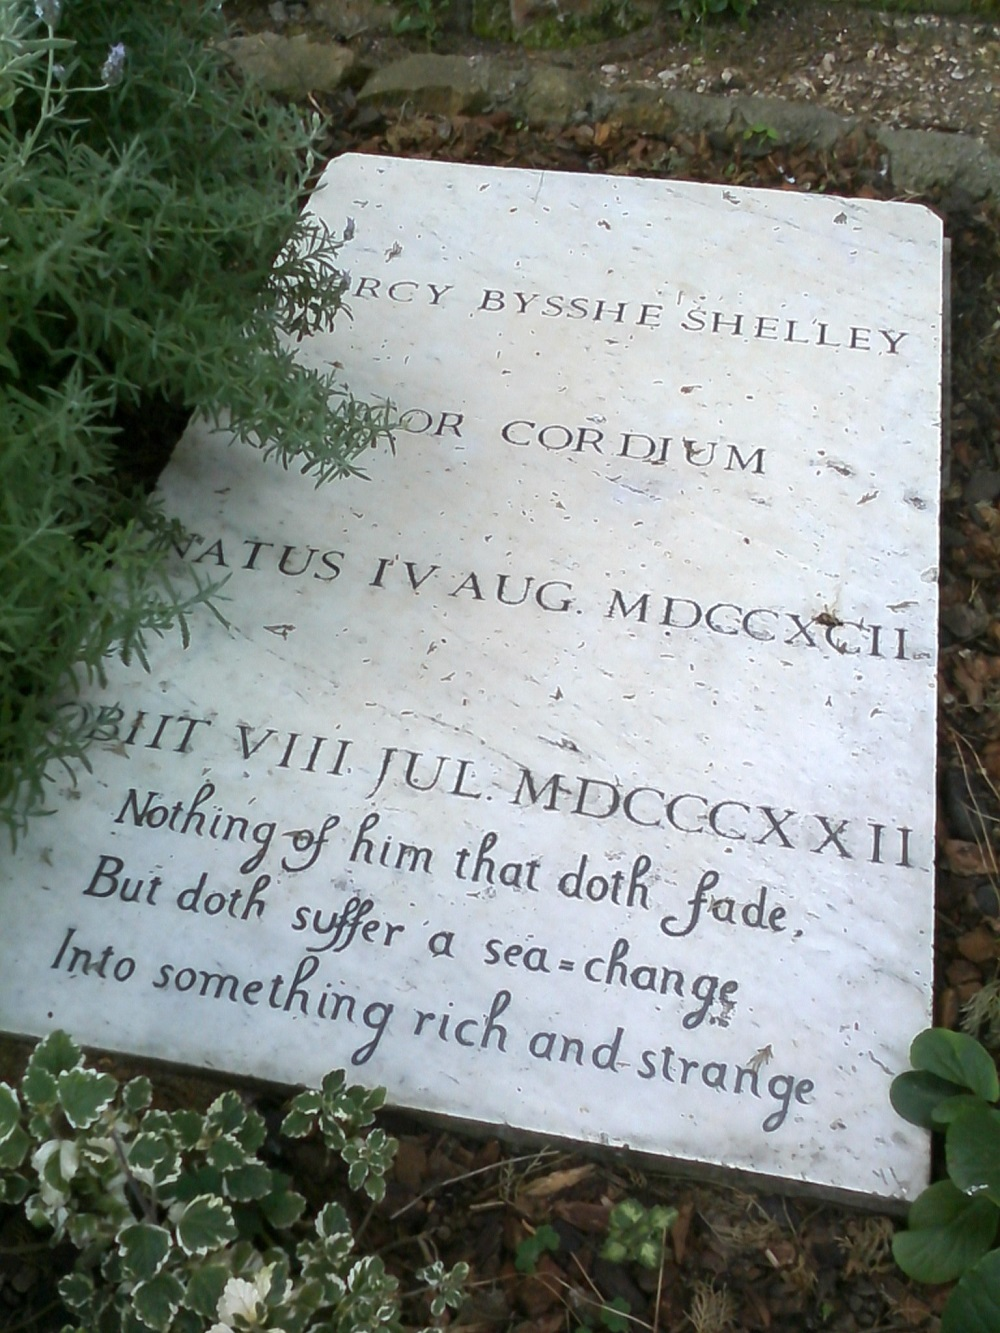 Shelley grave stone in full